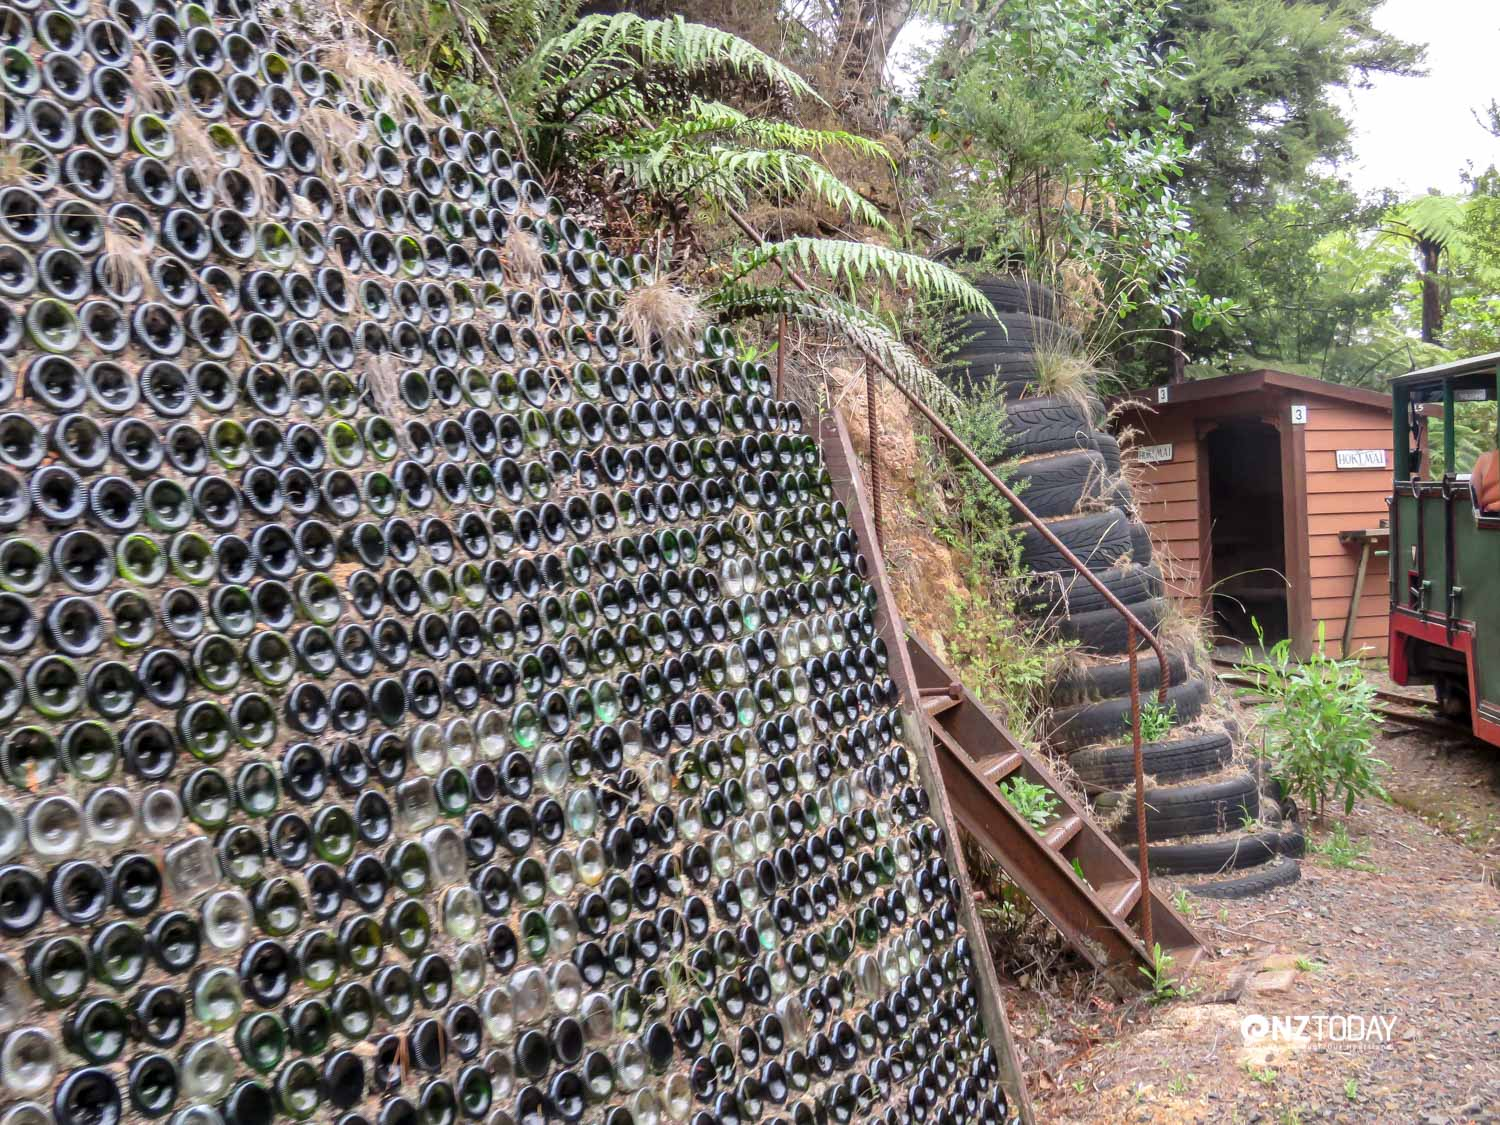 Bricks and bottles are used for retaining walls